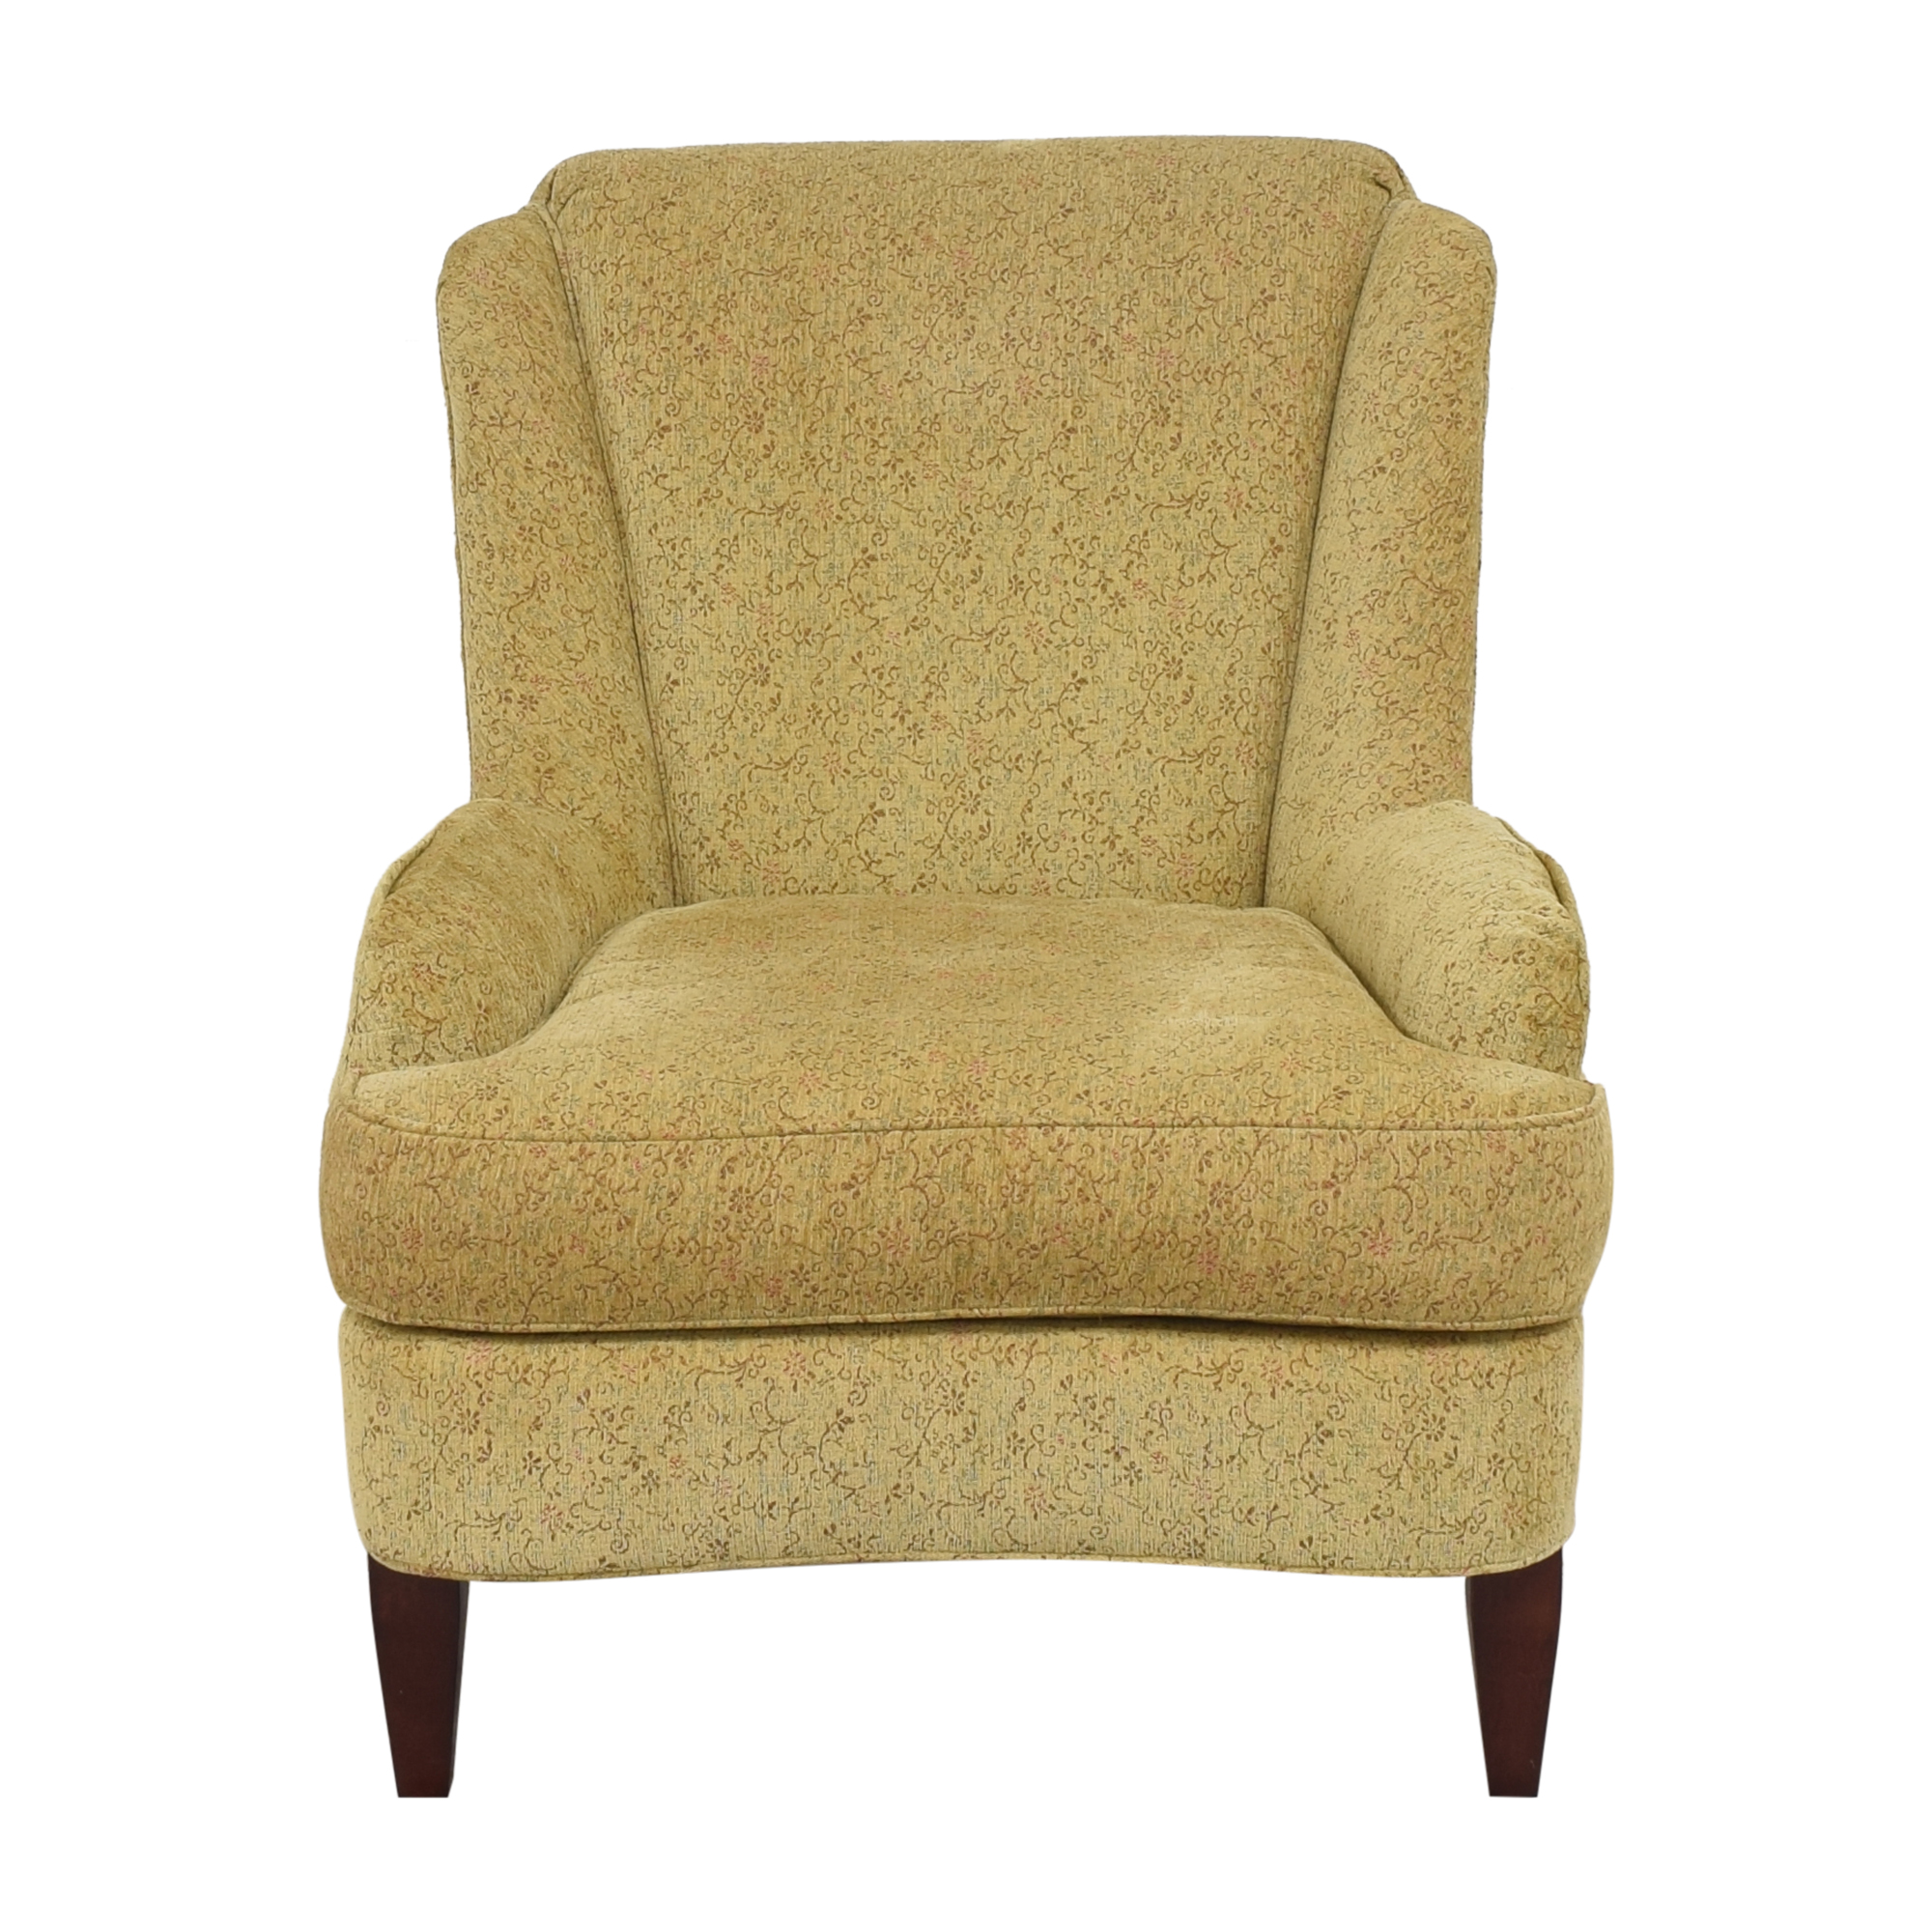 Beacon Hill Collection Beacon Hill Collection Accent Chair on sale